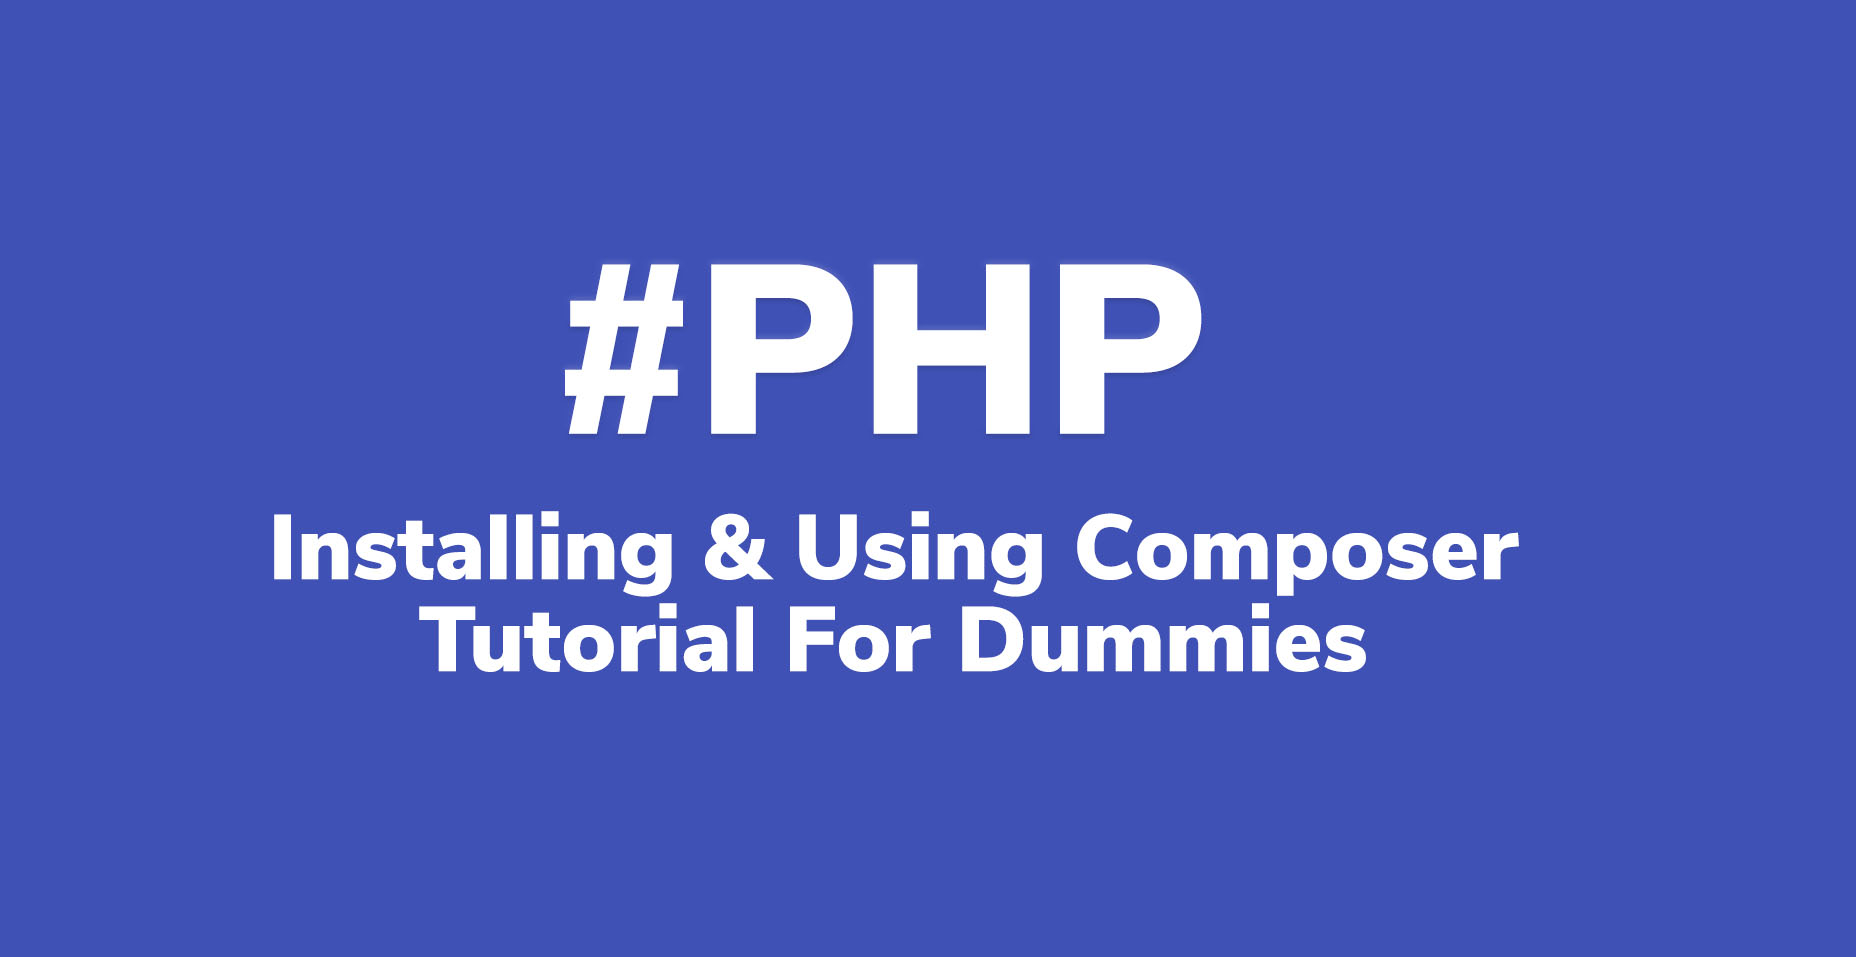 How To Install & Use Composer Tutorial For Dummies With PDF